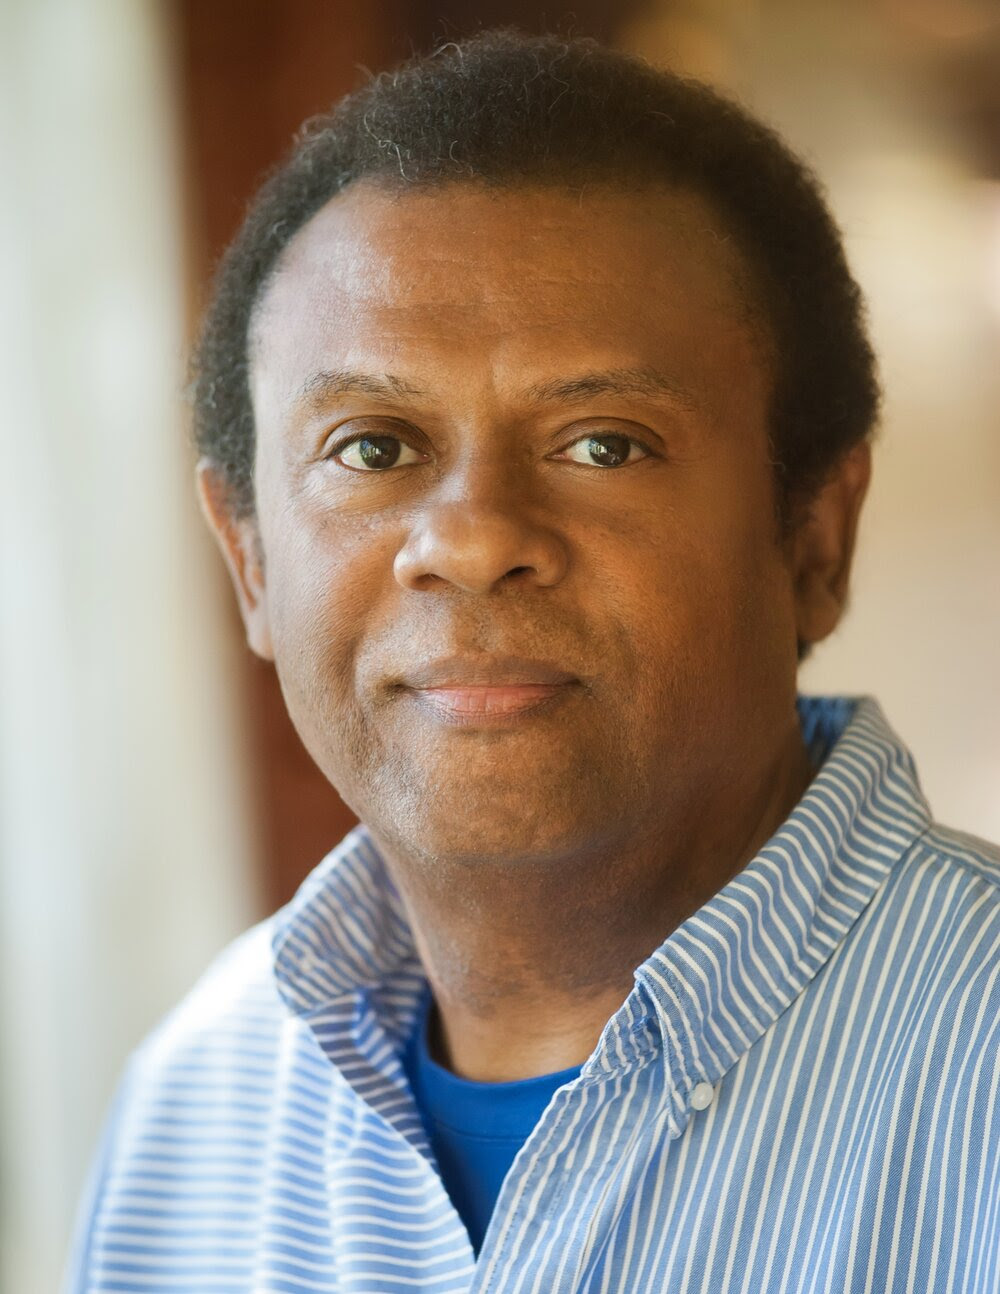 Headshot of Dr. Nicky Sheats, Black male wearing a blue shirt and blue and white striped collared shirt. Blurred tan and brown background.